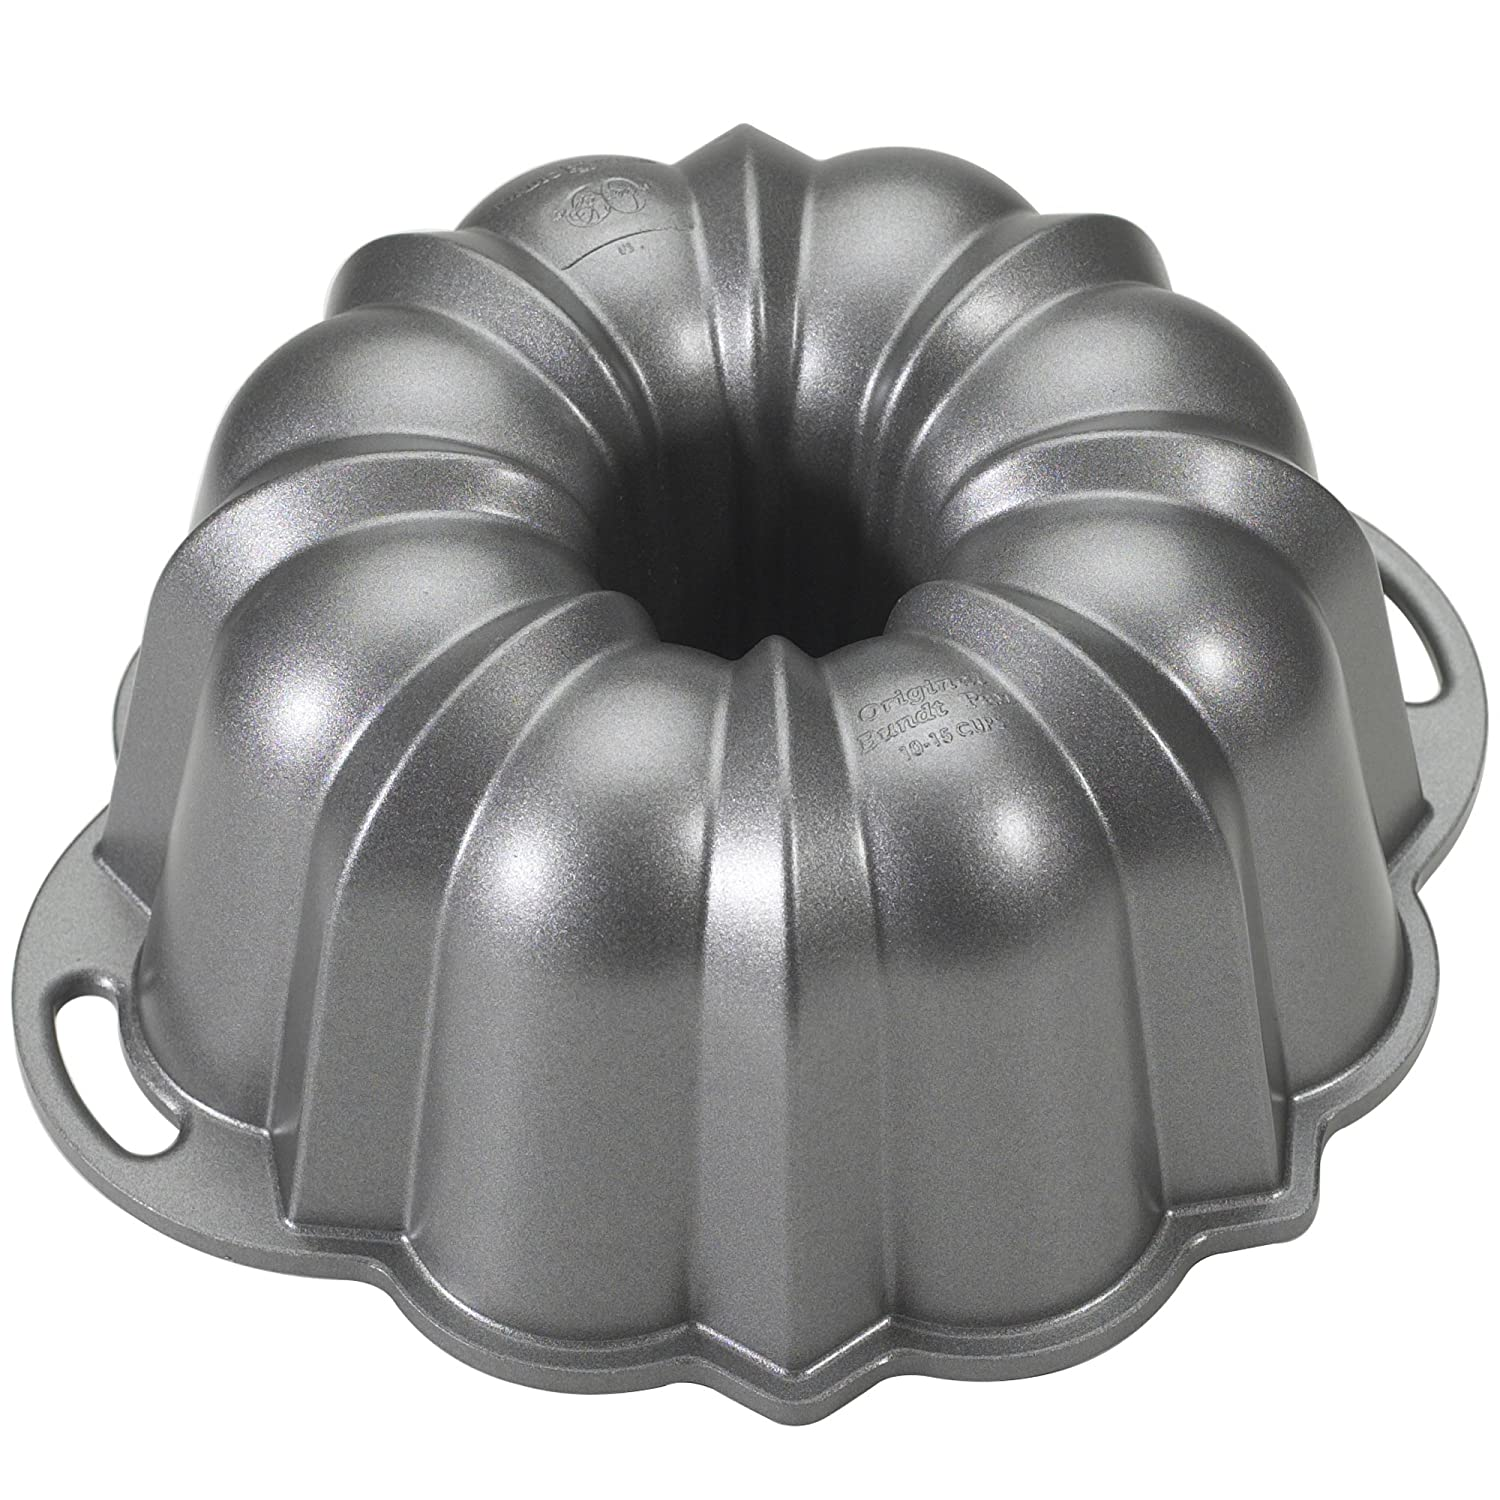 Large Bundt Cake Pan